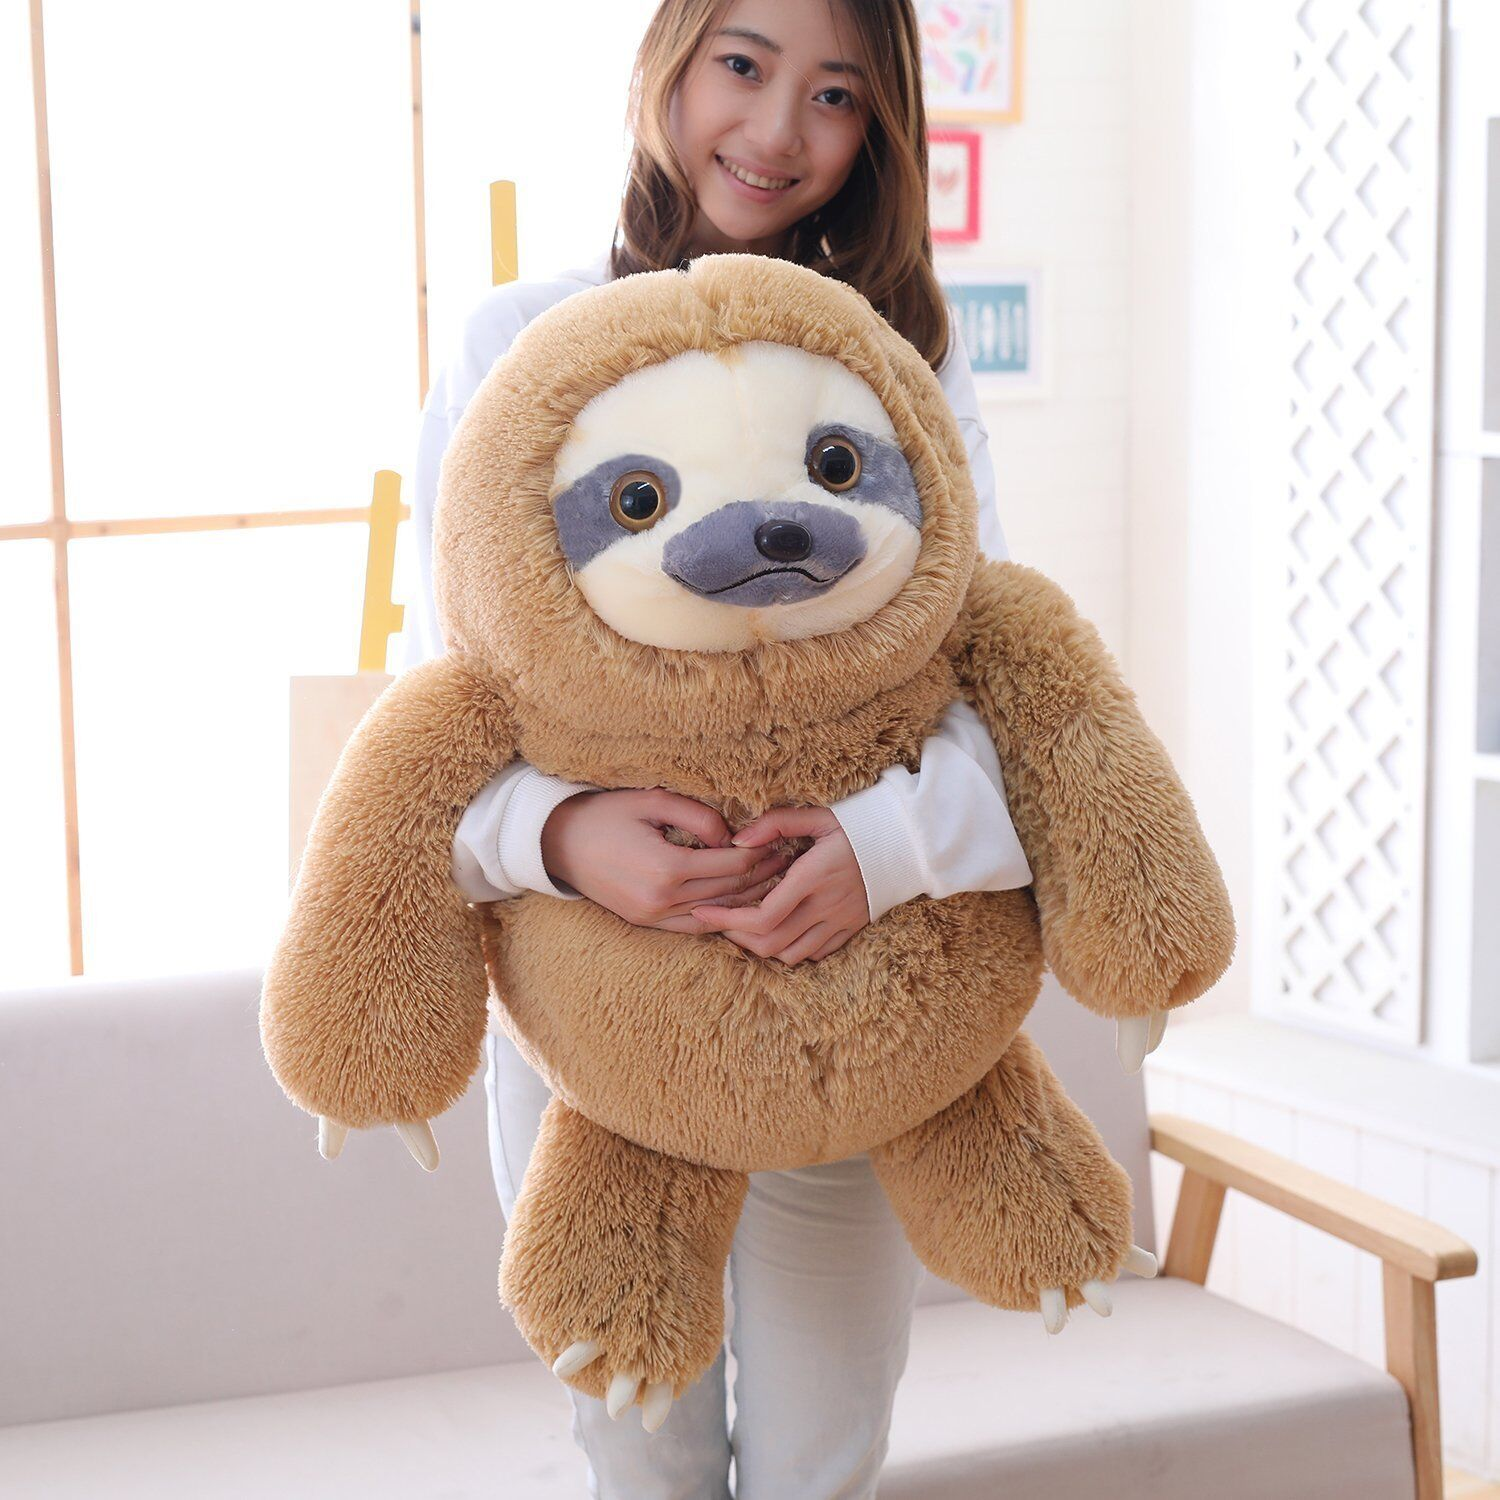 Winsterch Sloth Stuffed Animal Toy Kids Plush Sloth Gift 27.5 inches (Brown)